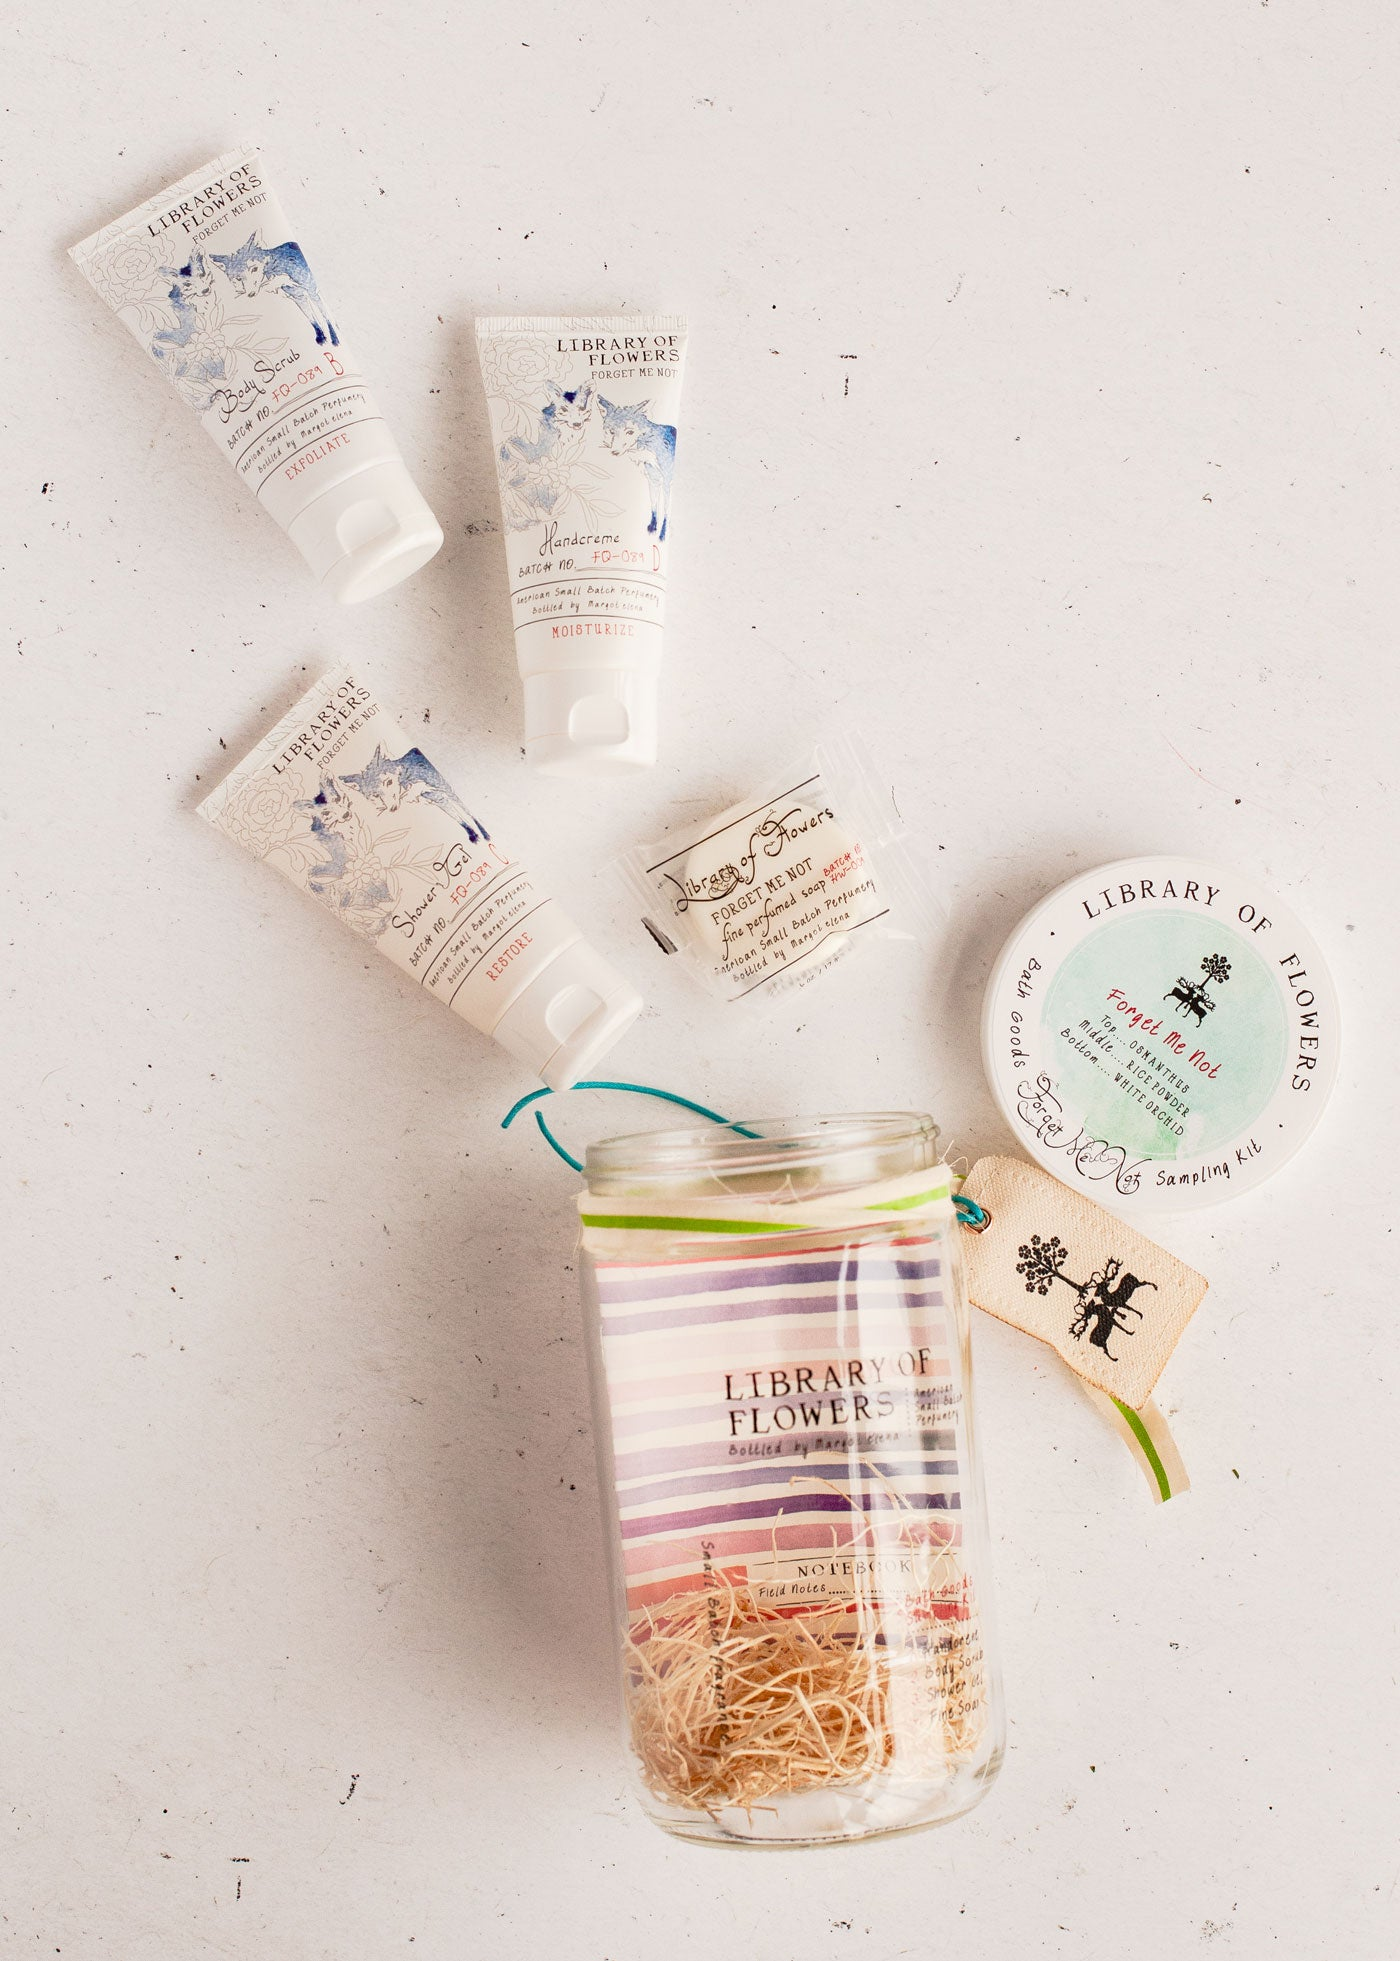 Forget Me Not Bath Goods Sampling Kit